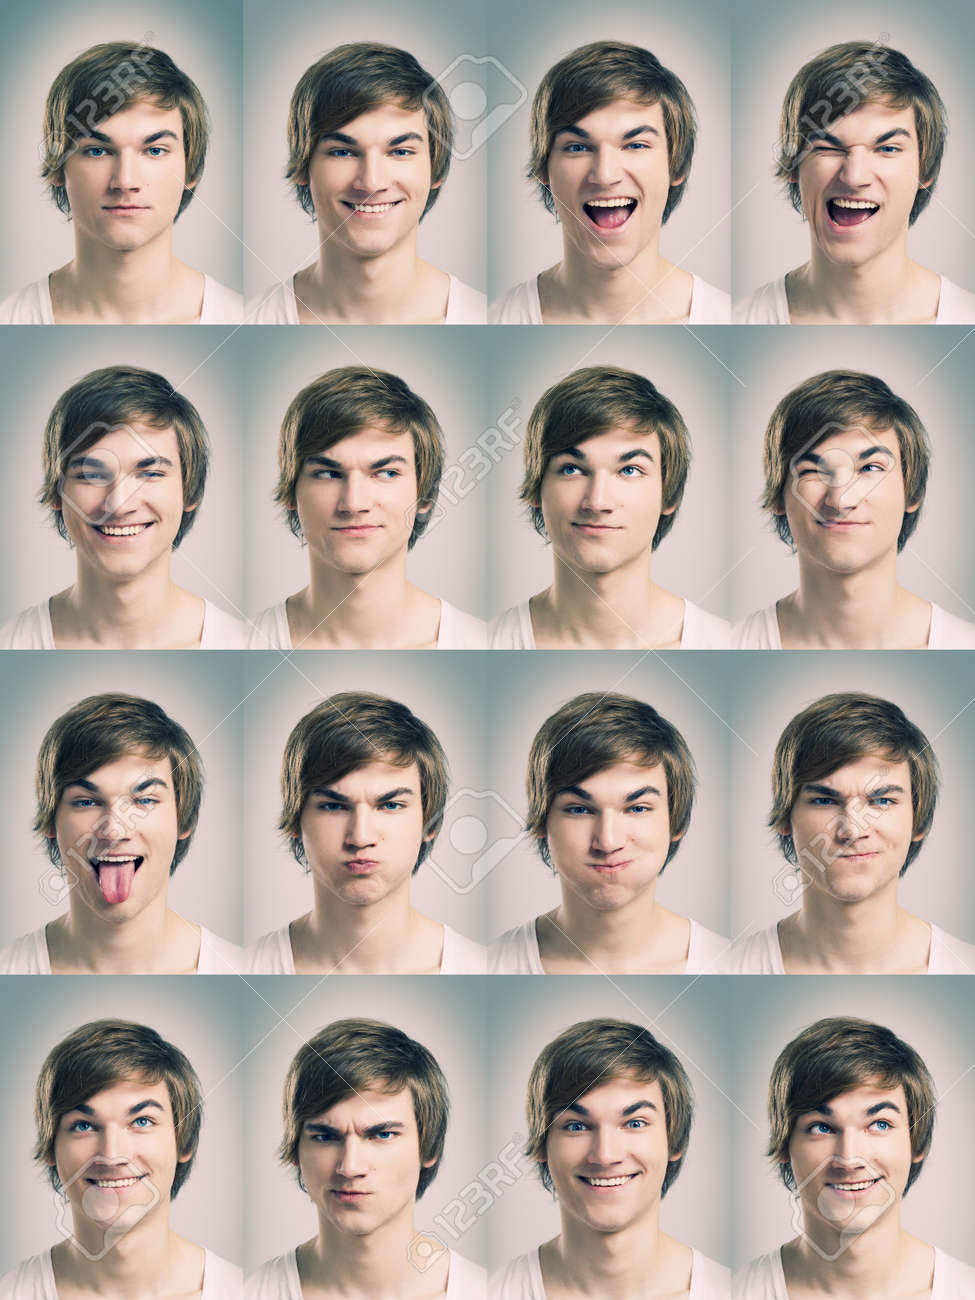 Grimace face clip art stock photo woman pulls a face in upset - Angry Suspicious Multiple Portraits Of A Young Man Doing Grimaces Stock Photo